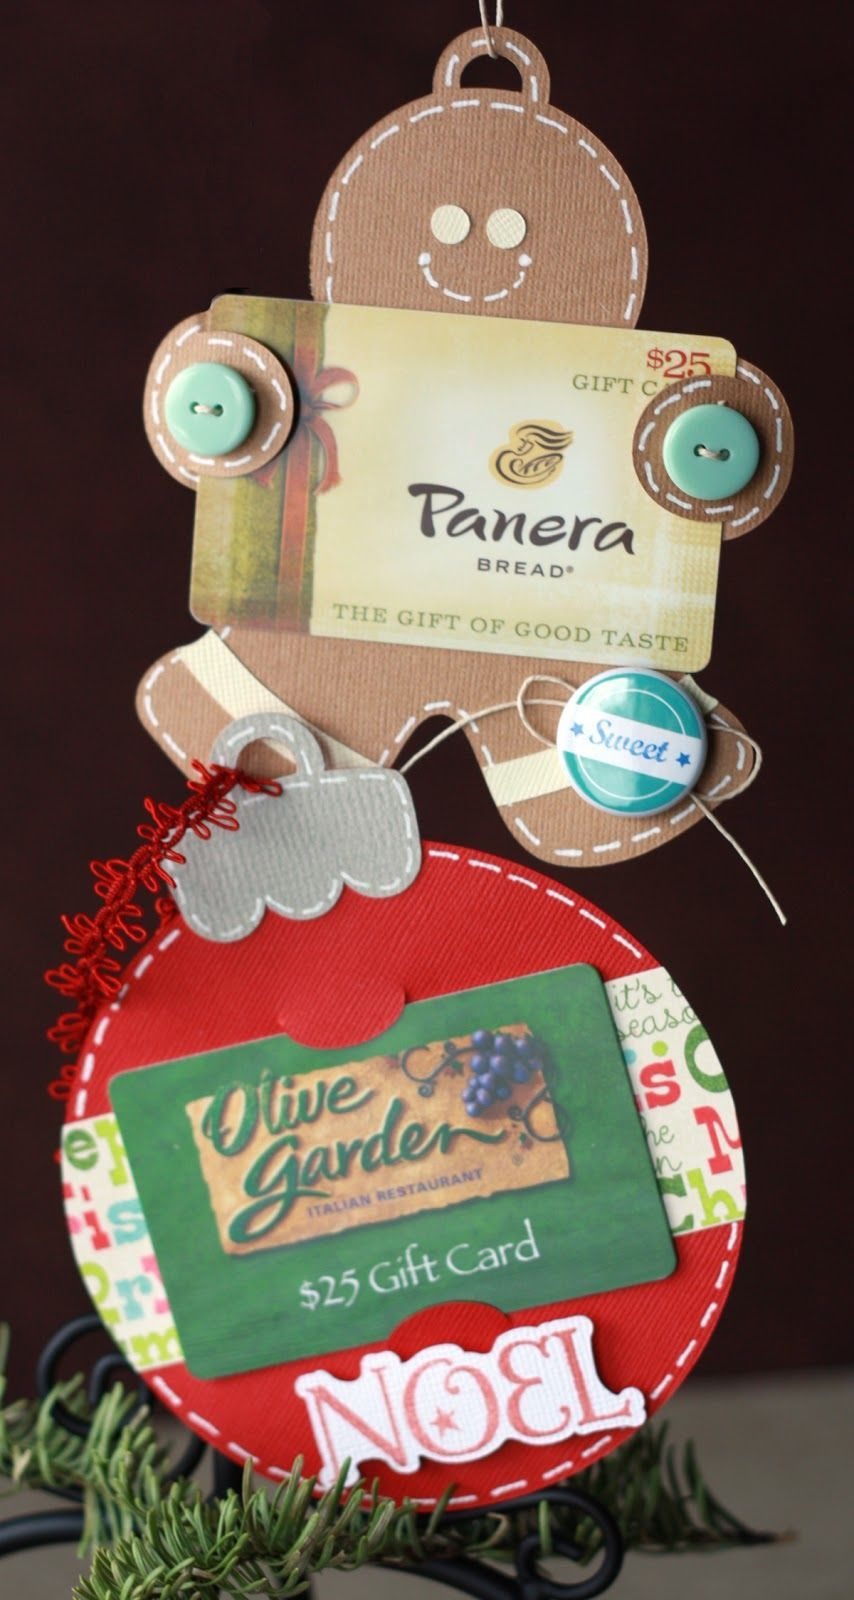 cute gift ornaments Amy made using our GIVE A GIFT CARD SVG KIT.   These are perfect for all with just the right gift card!What cute gift ornaments Amy made using our GIVE A GIFT CARD SVG KIT.   These are perfect for all with just the right gift card!